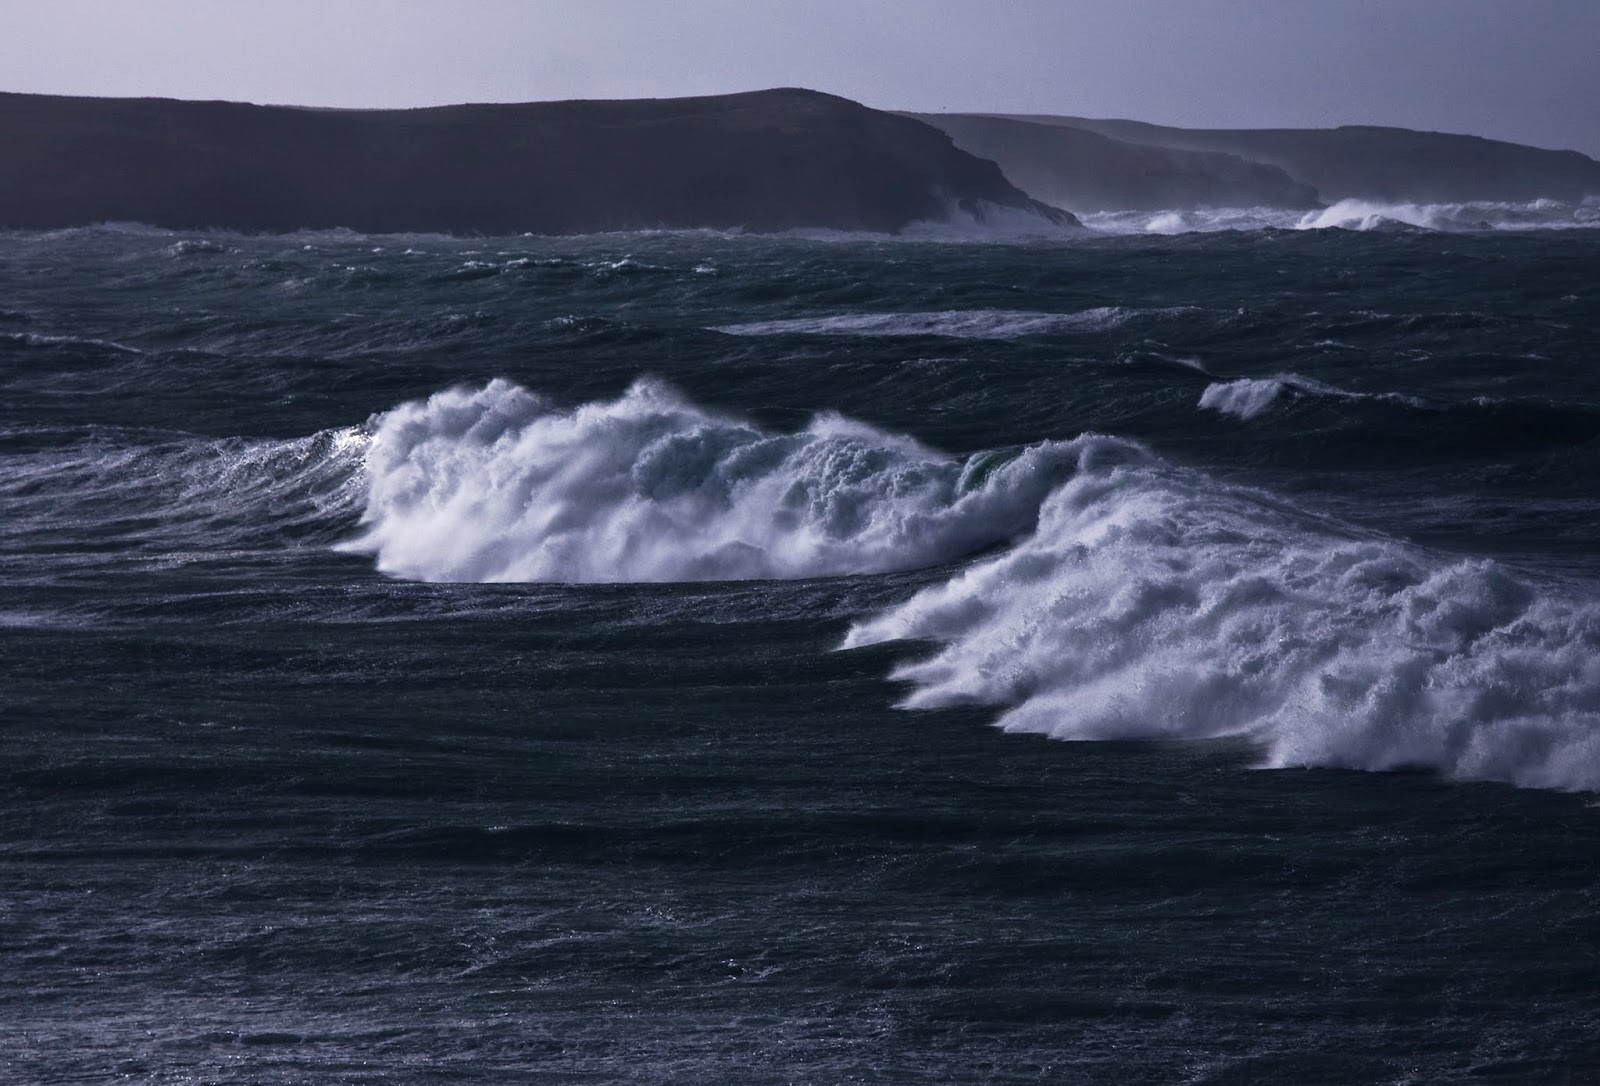 Storm, Sea, Whitewater, Huge Seas, Coast